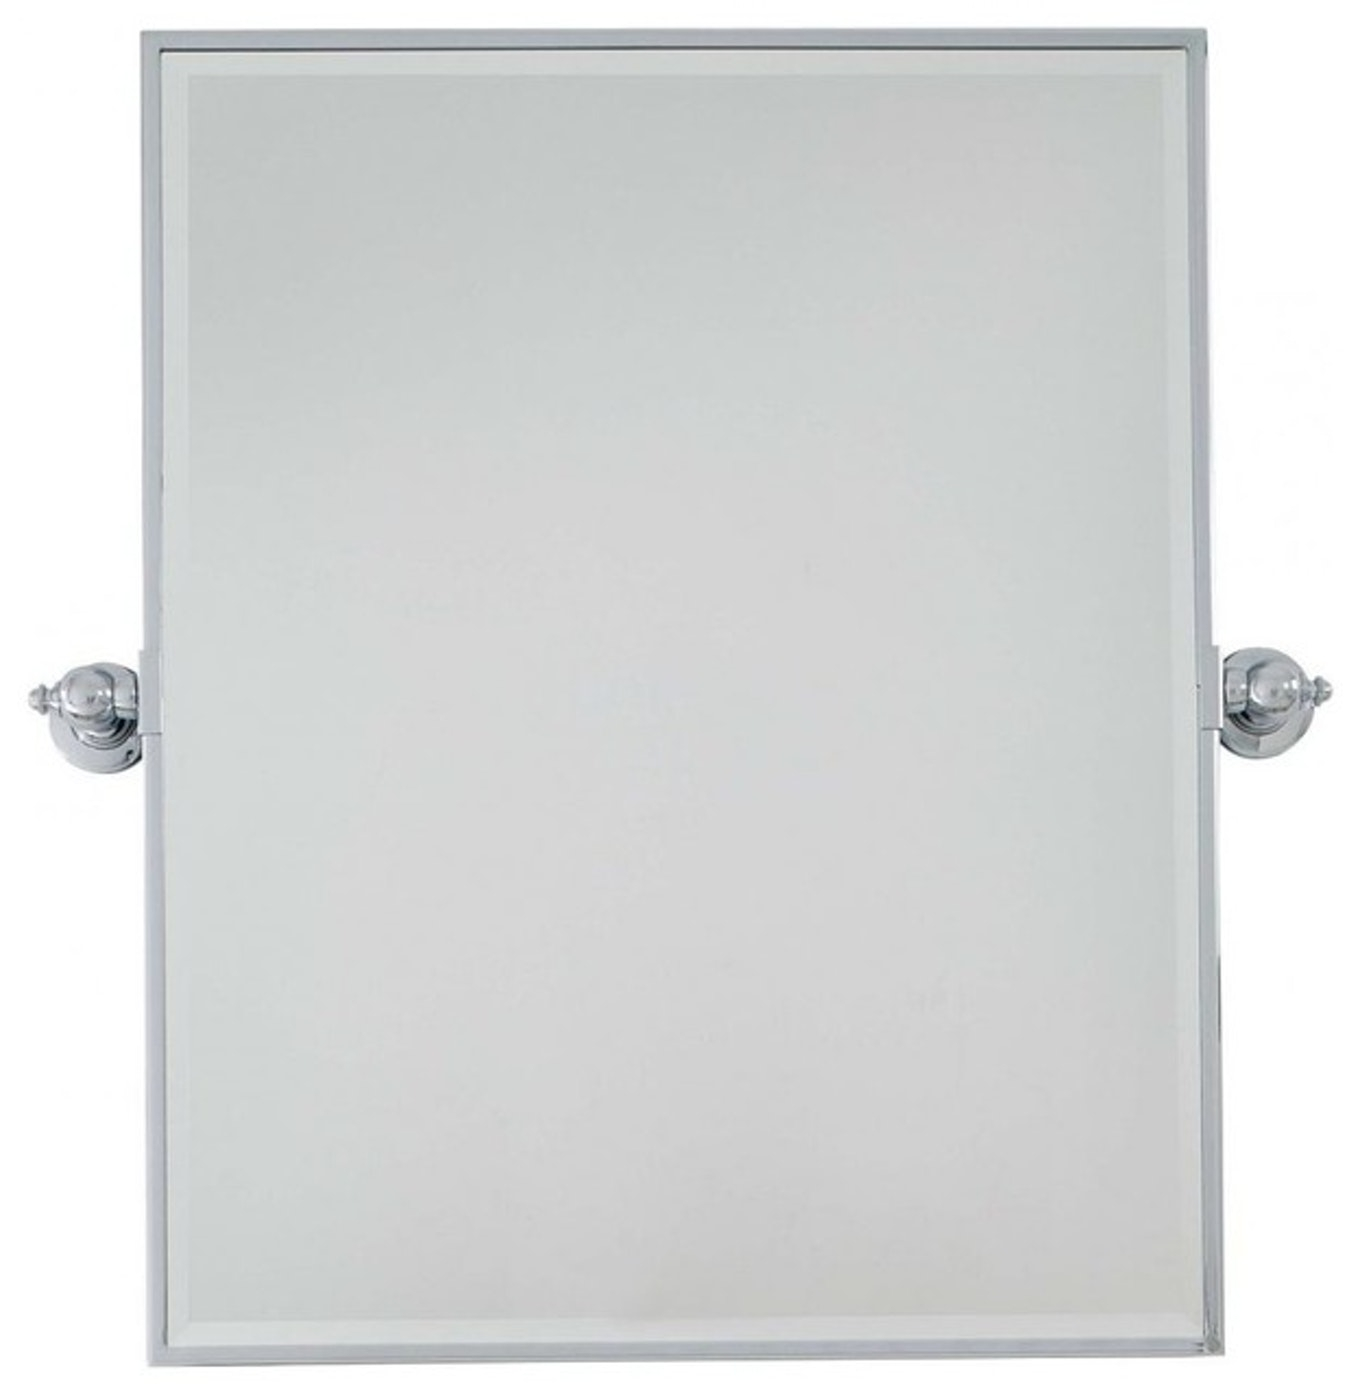 Extra Large Floor Mirror Chrome Framed Pivot Wall Mirrors With intended for Chrome Floor Mirrors (Image 7 of 25)